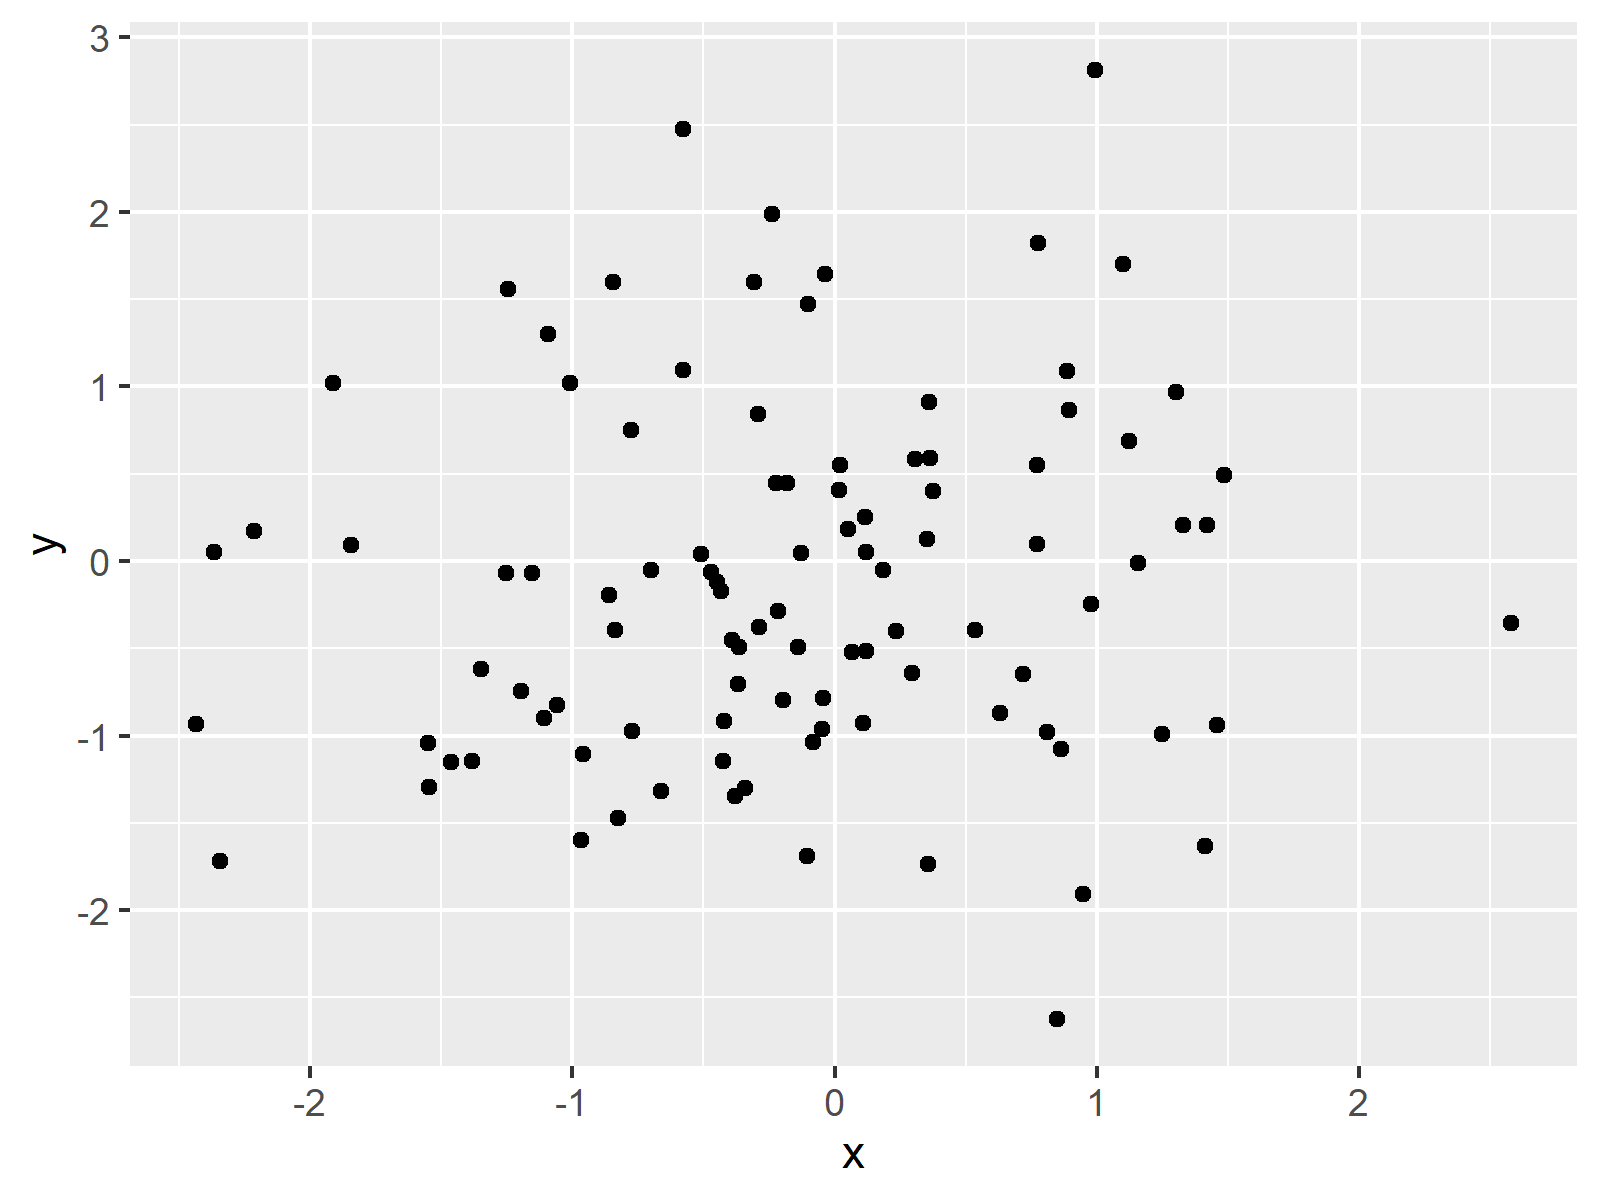 ggplot2 package scatterplot r